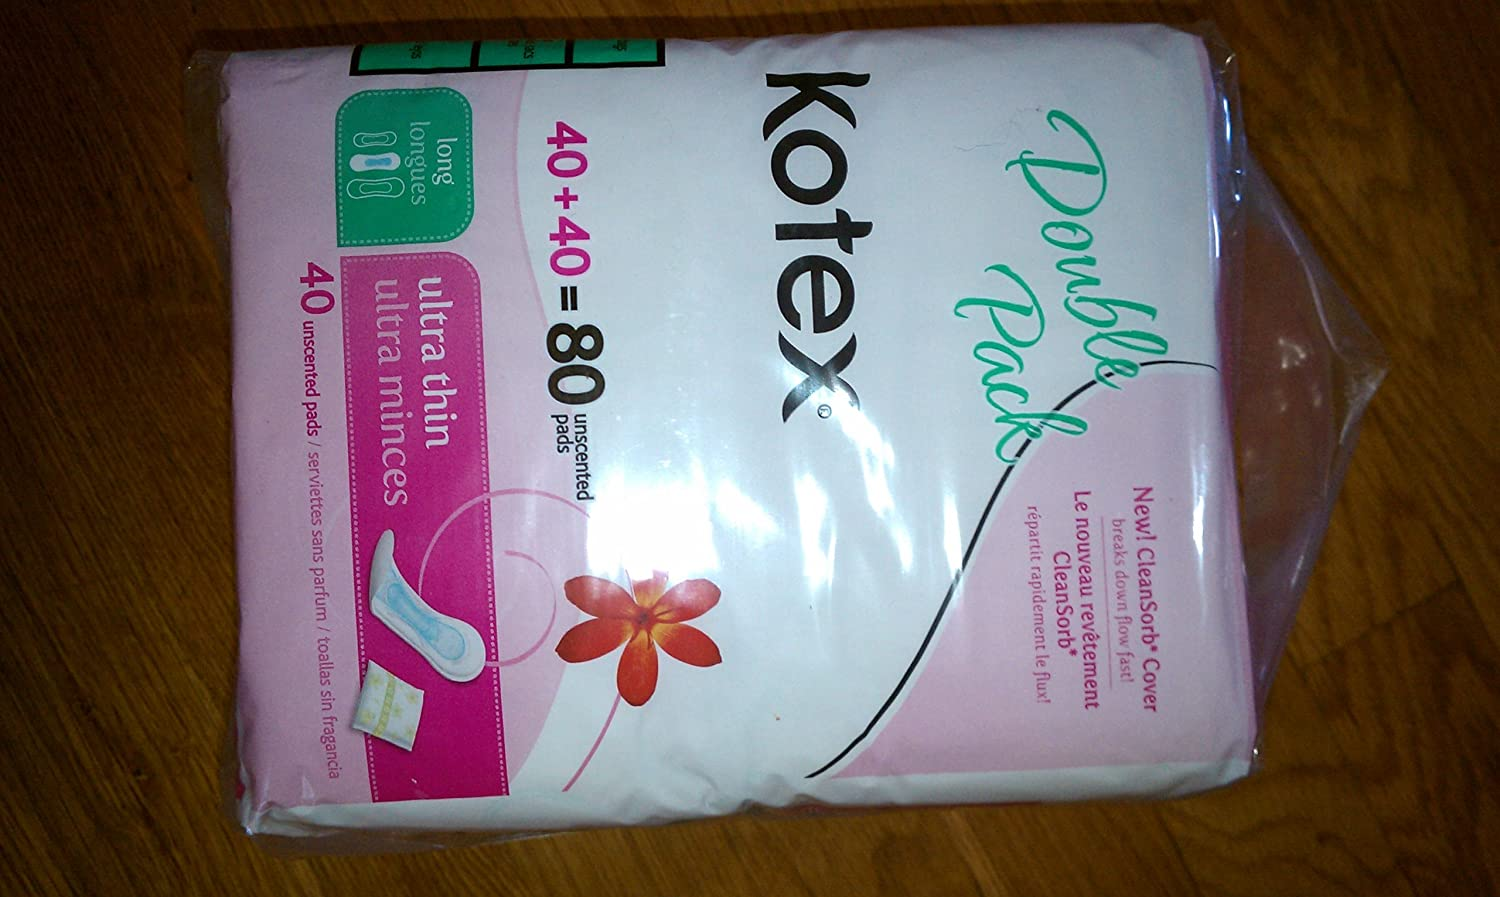 Amazon.com: Kotex Ultra Thin Long Longues, Case of Six-40 Count (240 Pads): Health & Personal Care